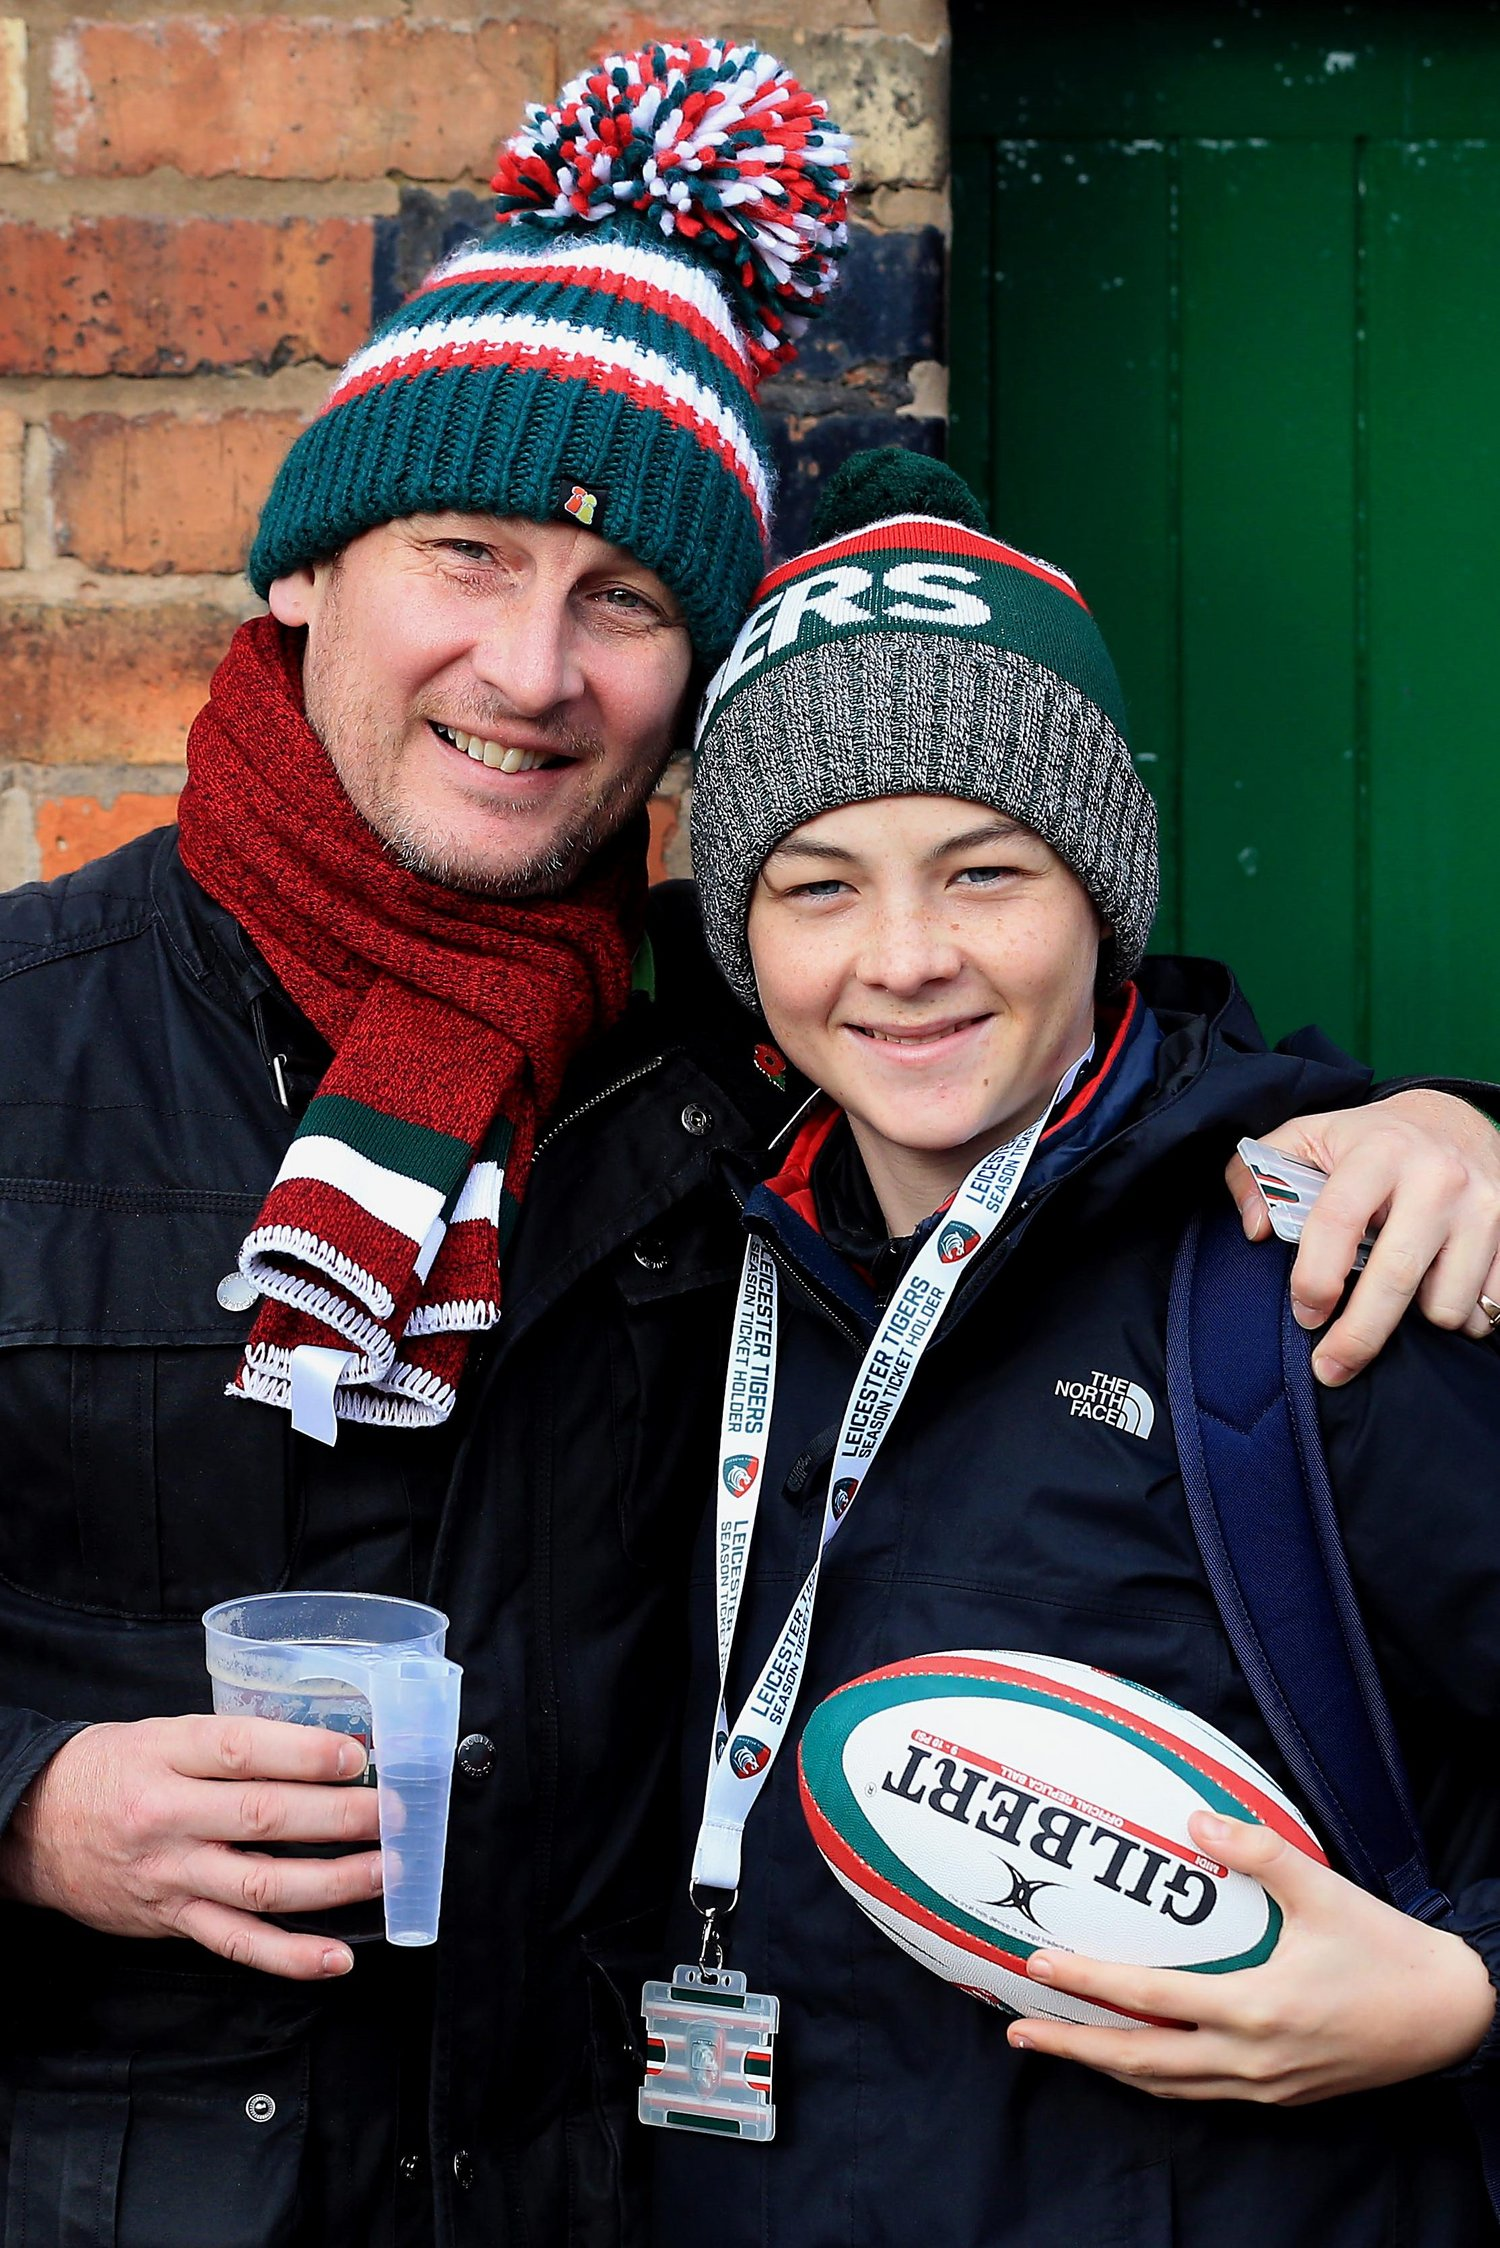 Leicester Tigers fans